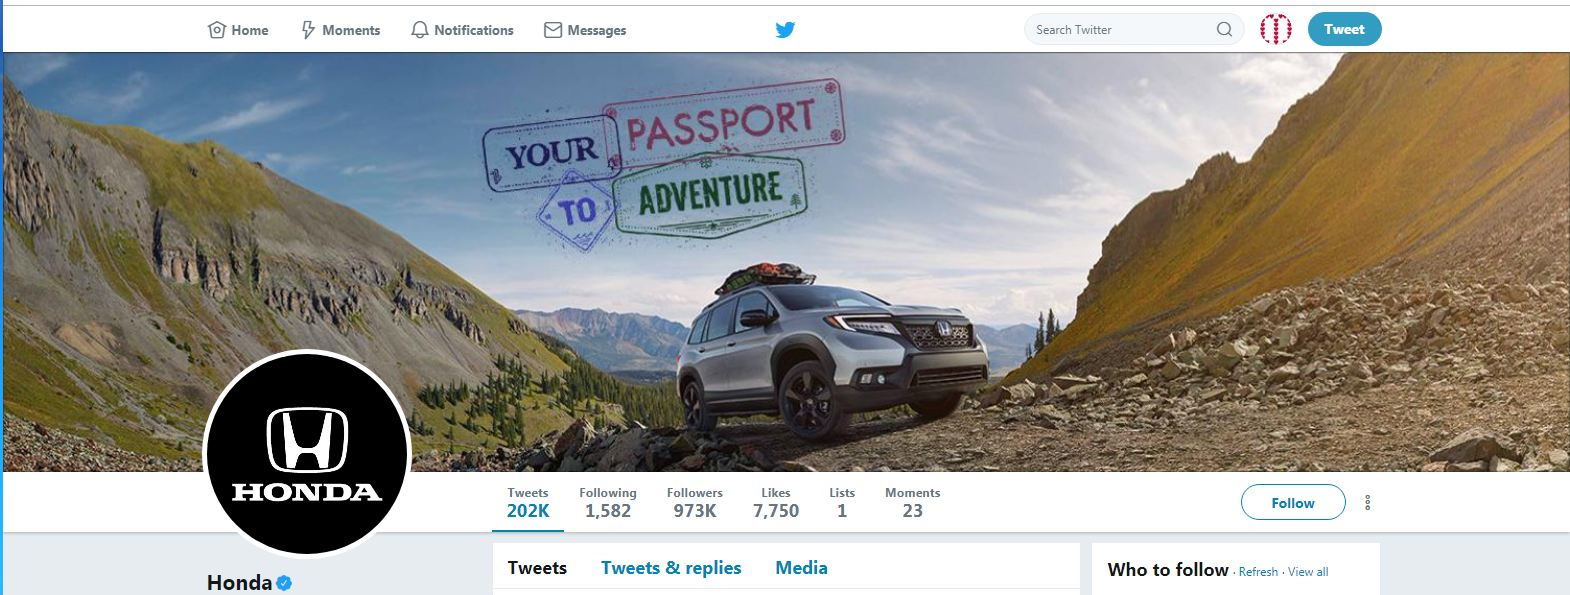 Honda Cover Photo Of Twitter